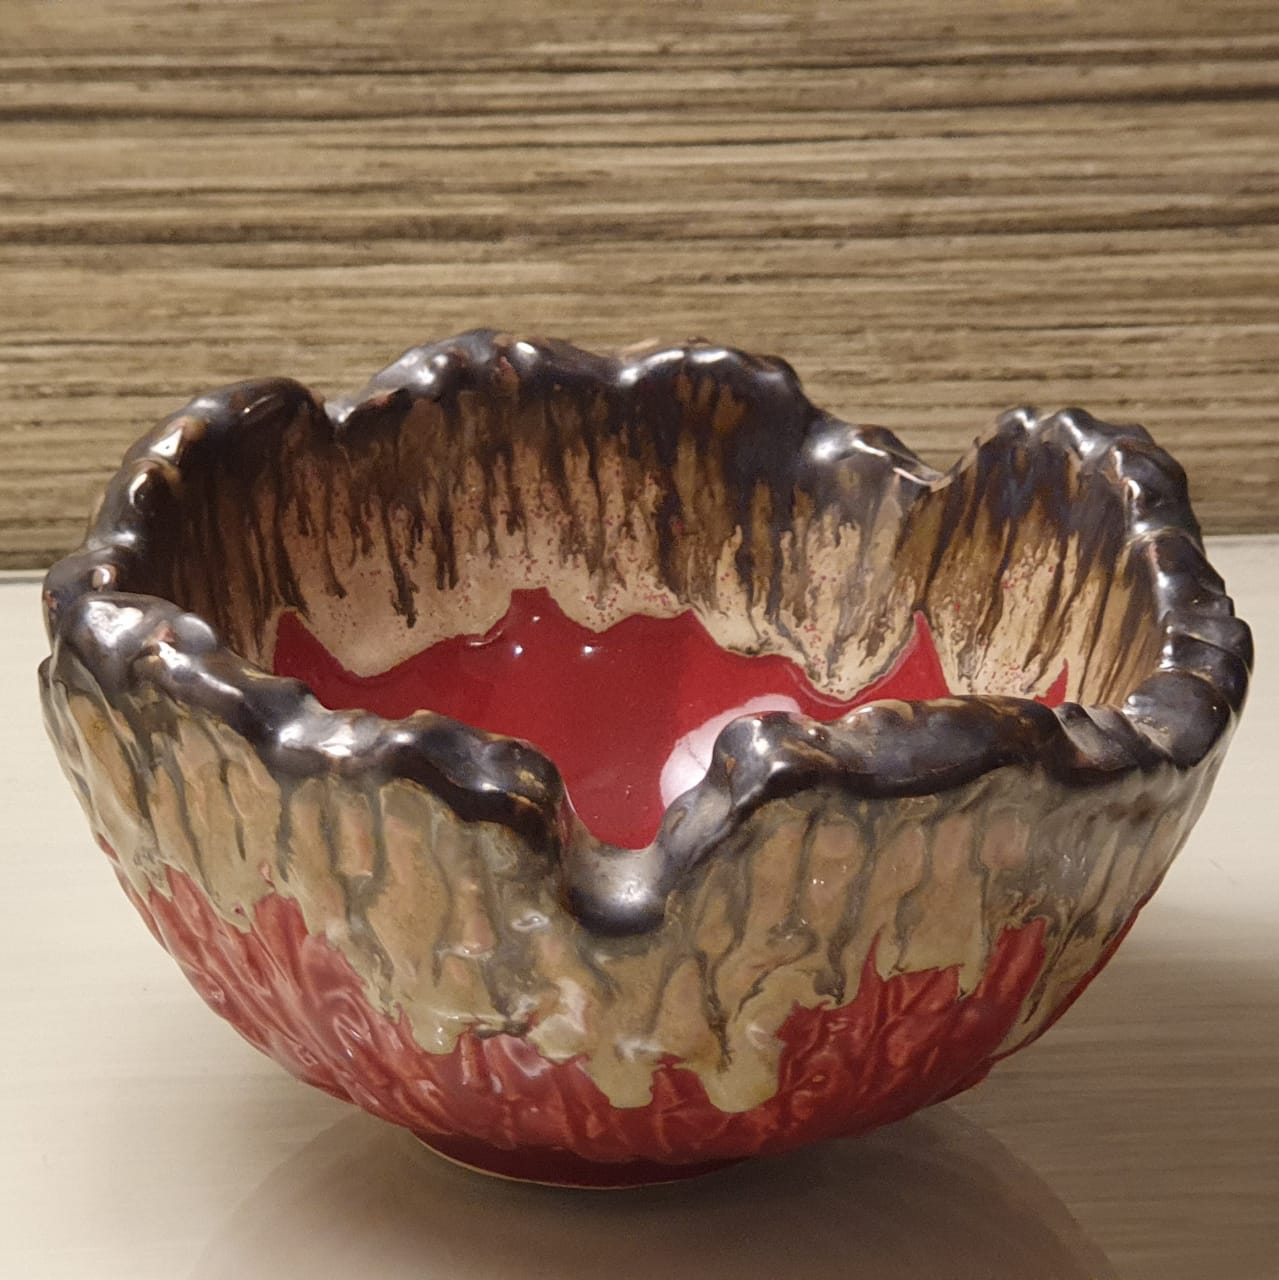 A Tiny Mistake Red Decorative Small Ceramic Serving Bowl